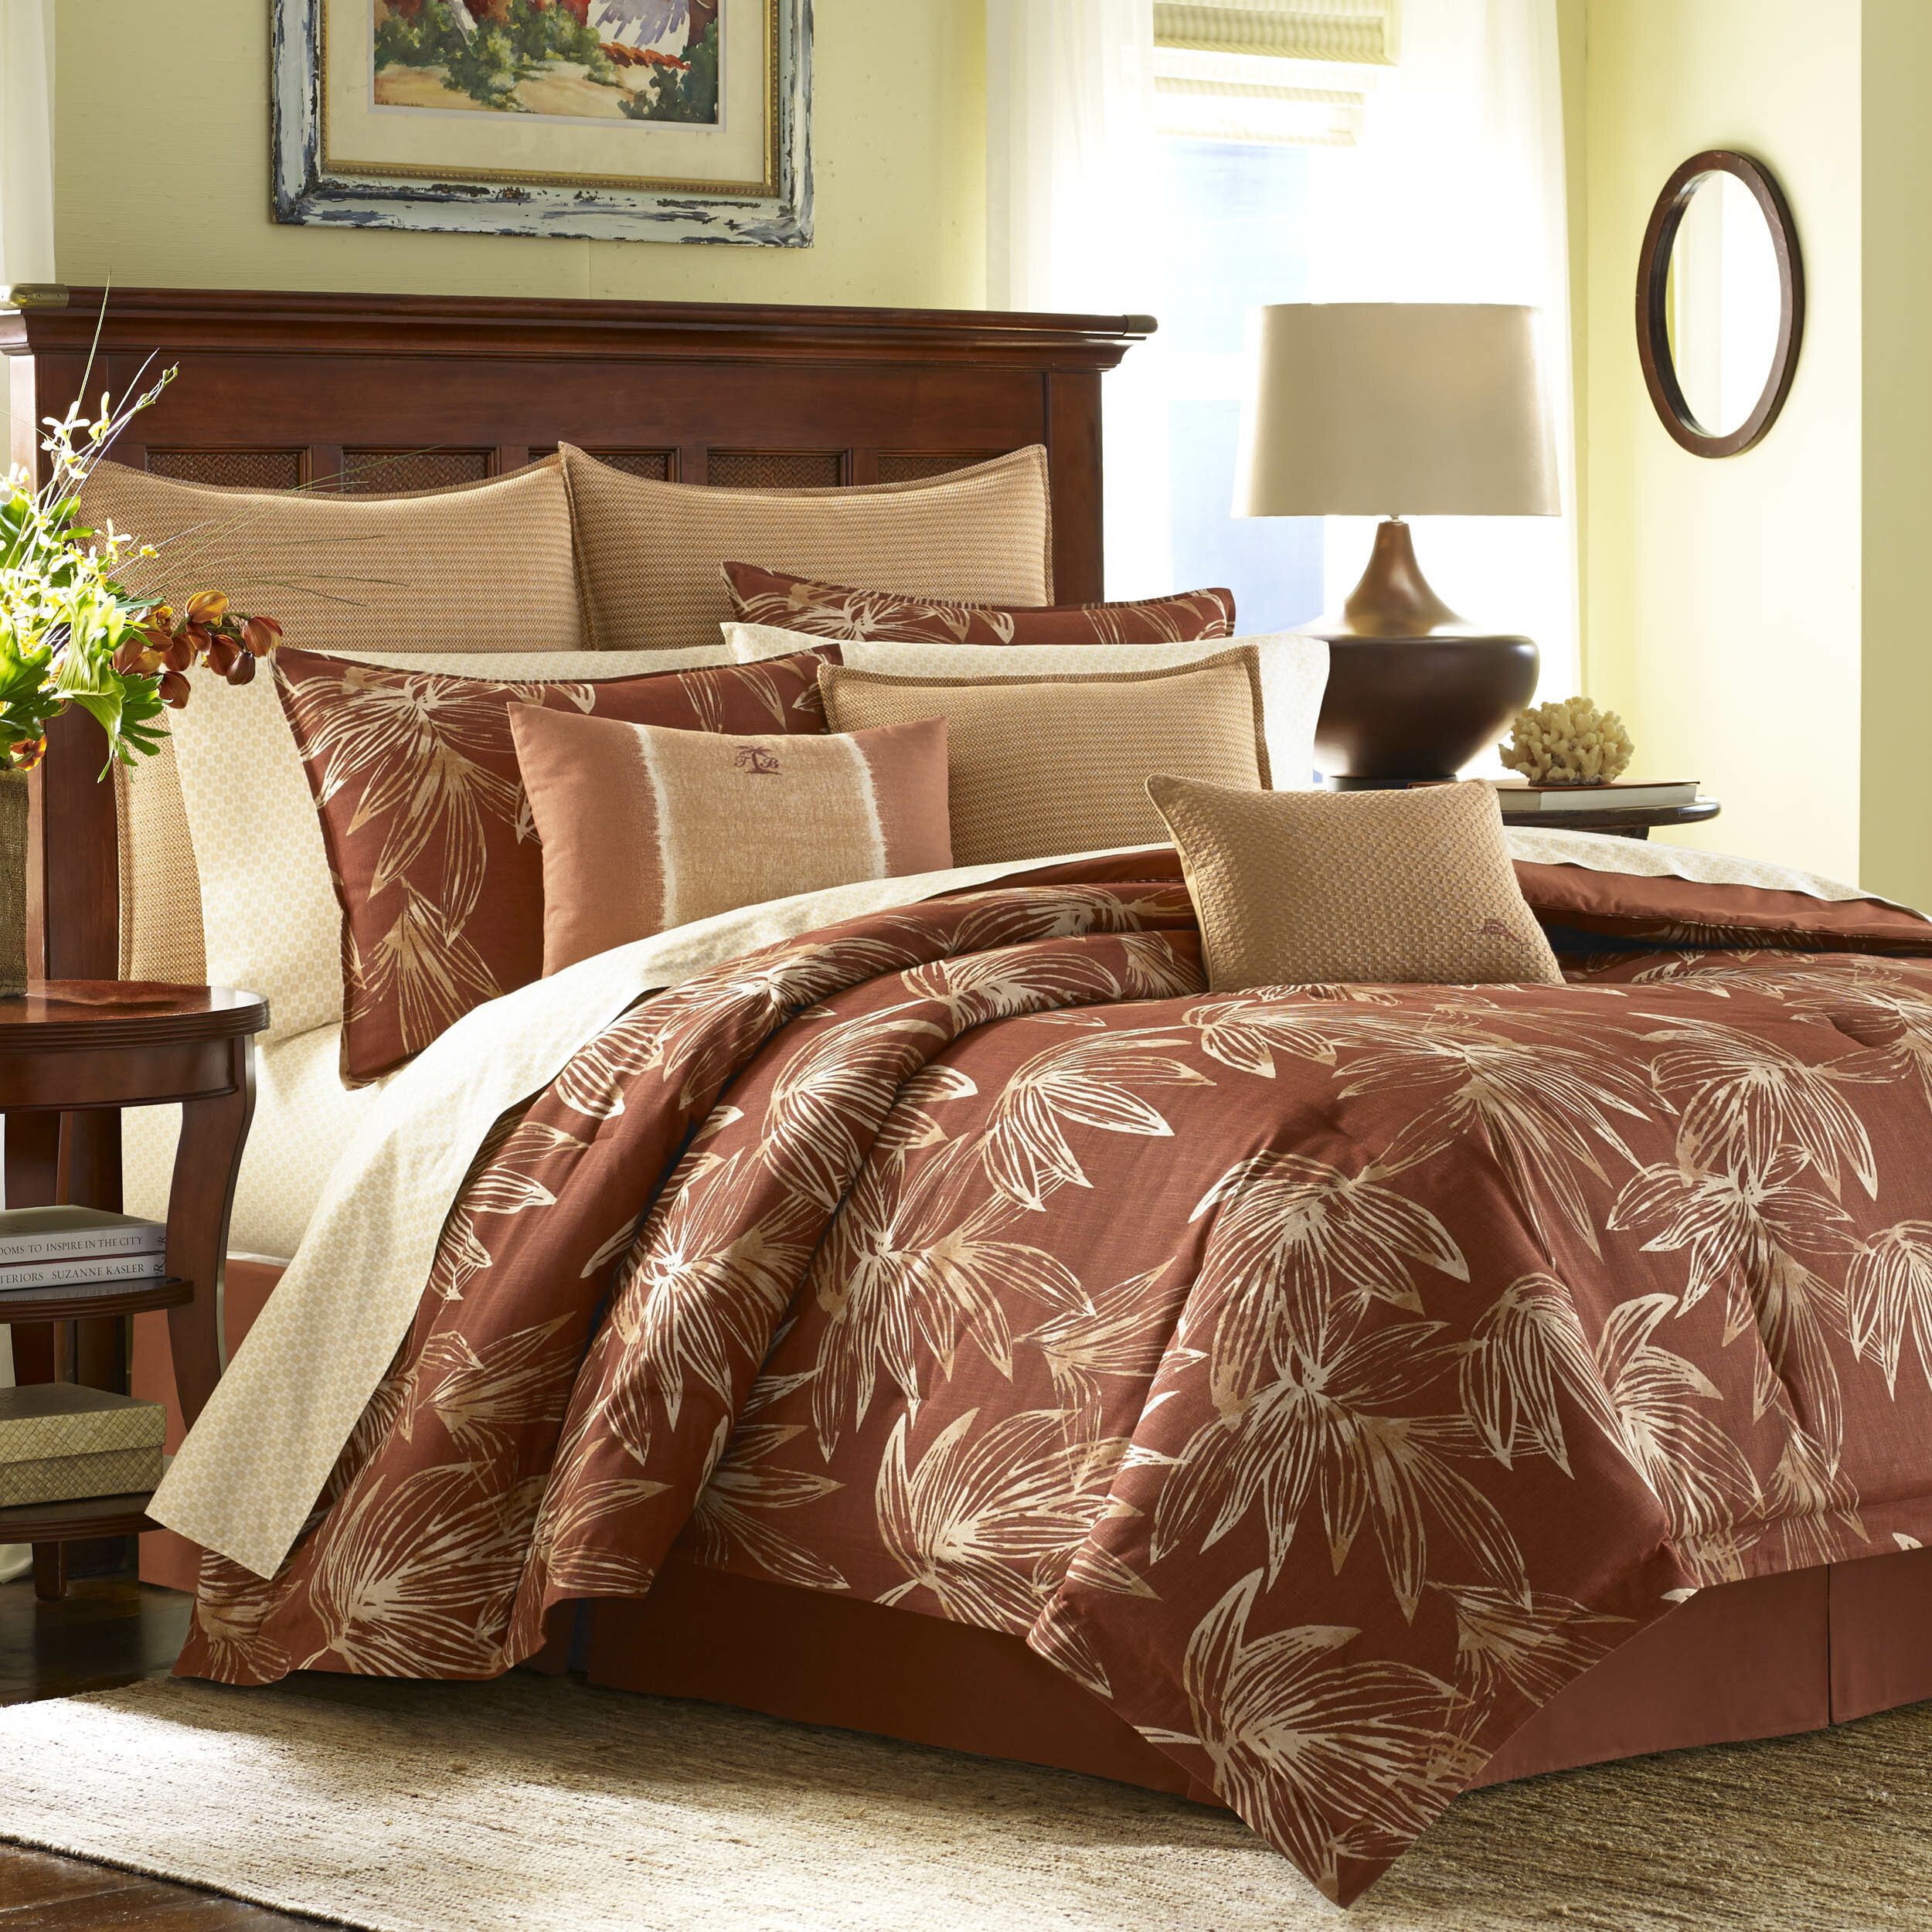 size piece and bedding set bedroom rust damask jacquard gray croscill full burgundy beige cream comforter plaid of u superb ease red curtains style queen fuchsia alyssa by brown with